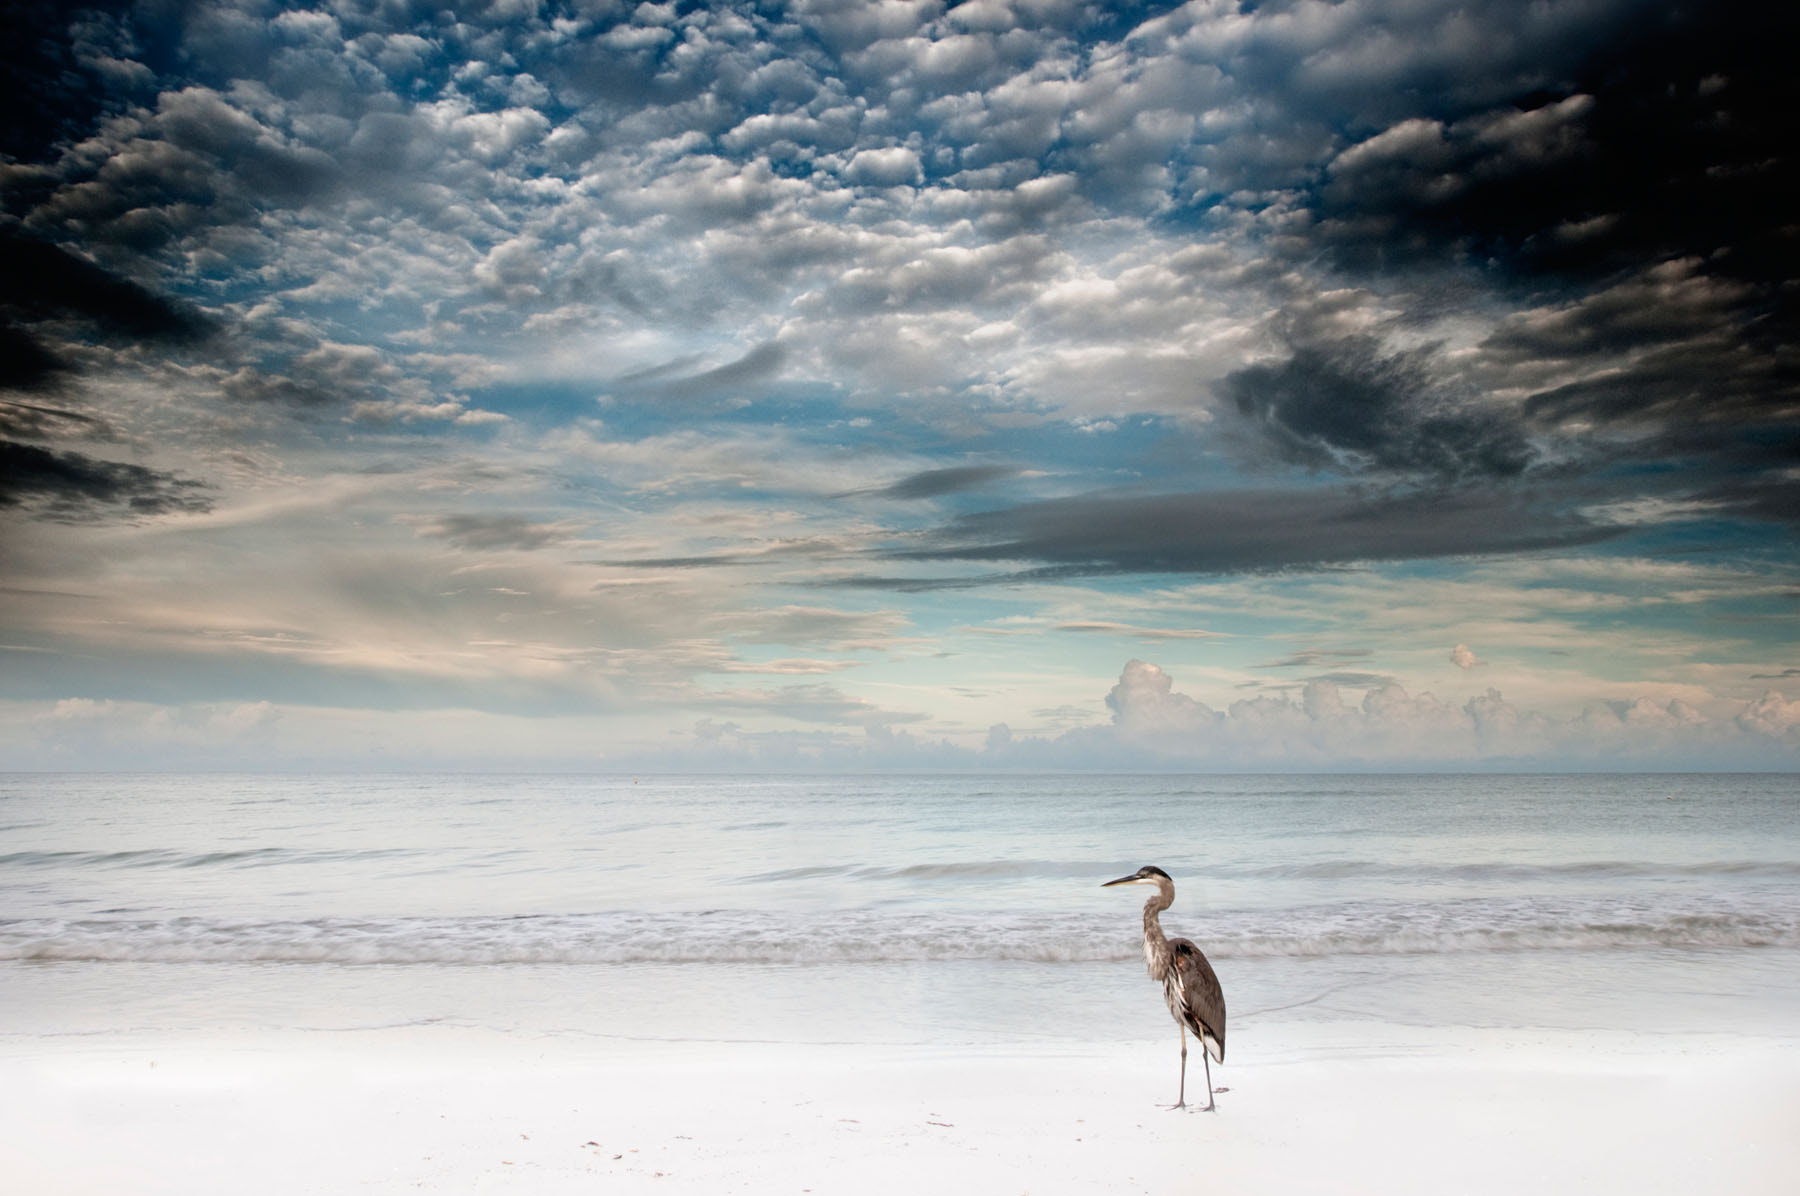 Photograph Series - Florida 1 by Pietro Canali on 500px